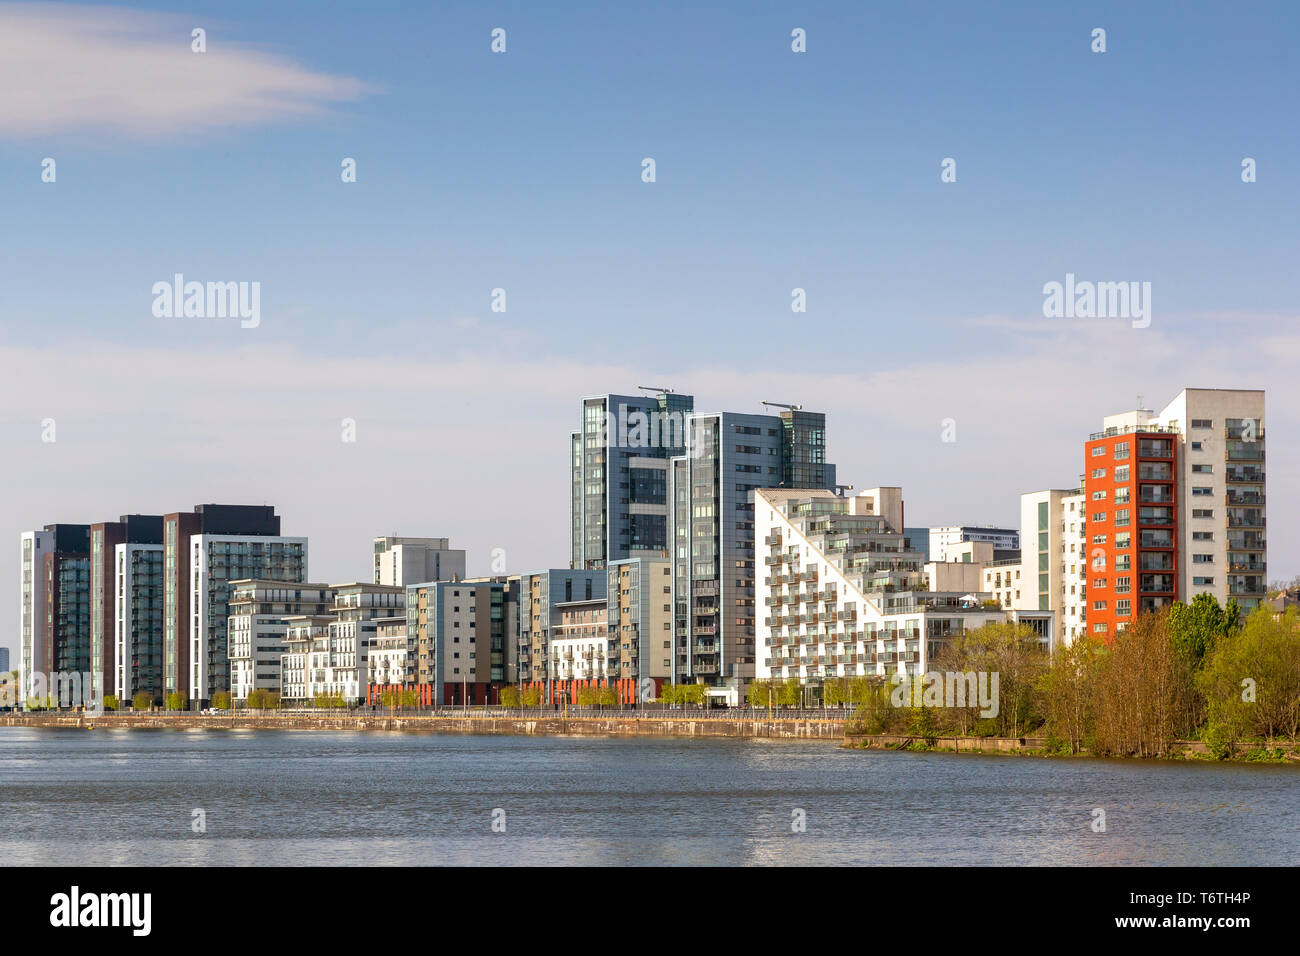 City skyline of Partick housing overlooking the River Clyde, Glasgow, Scotland, UK - Stock Image